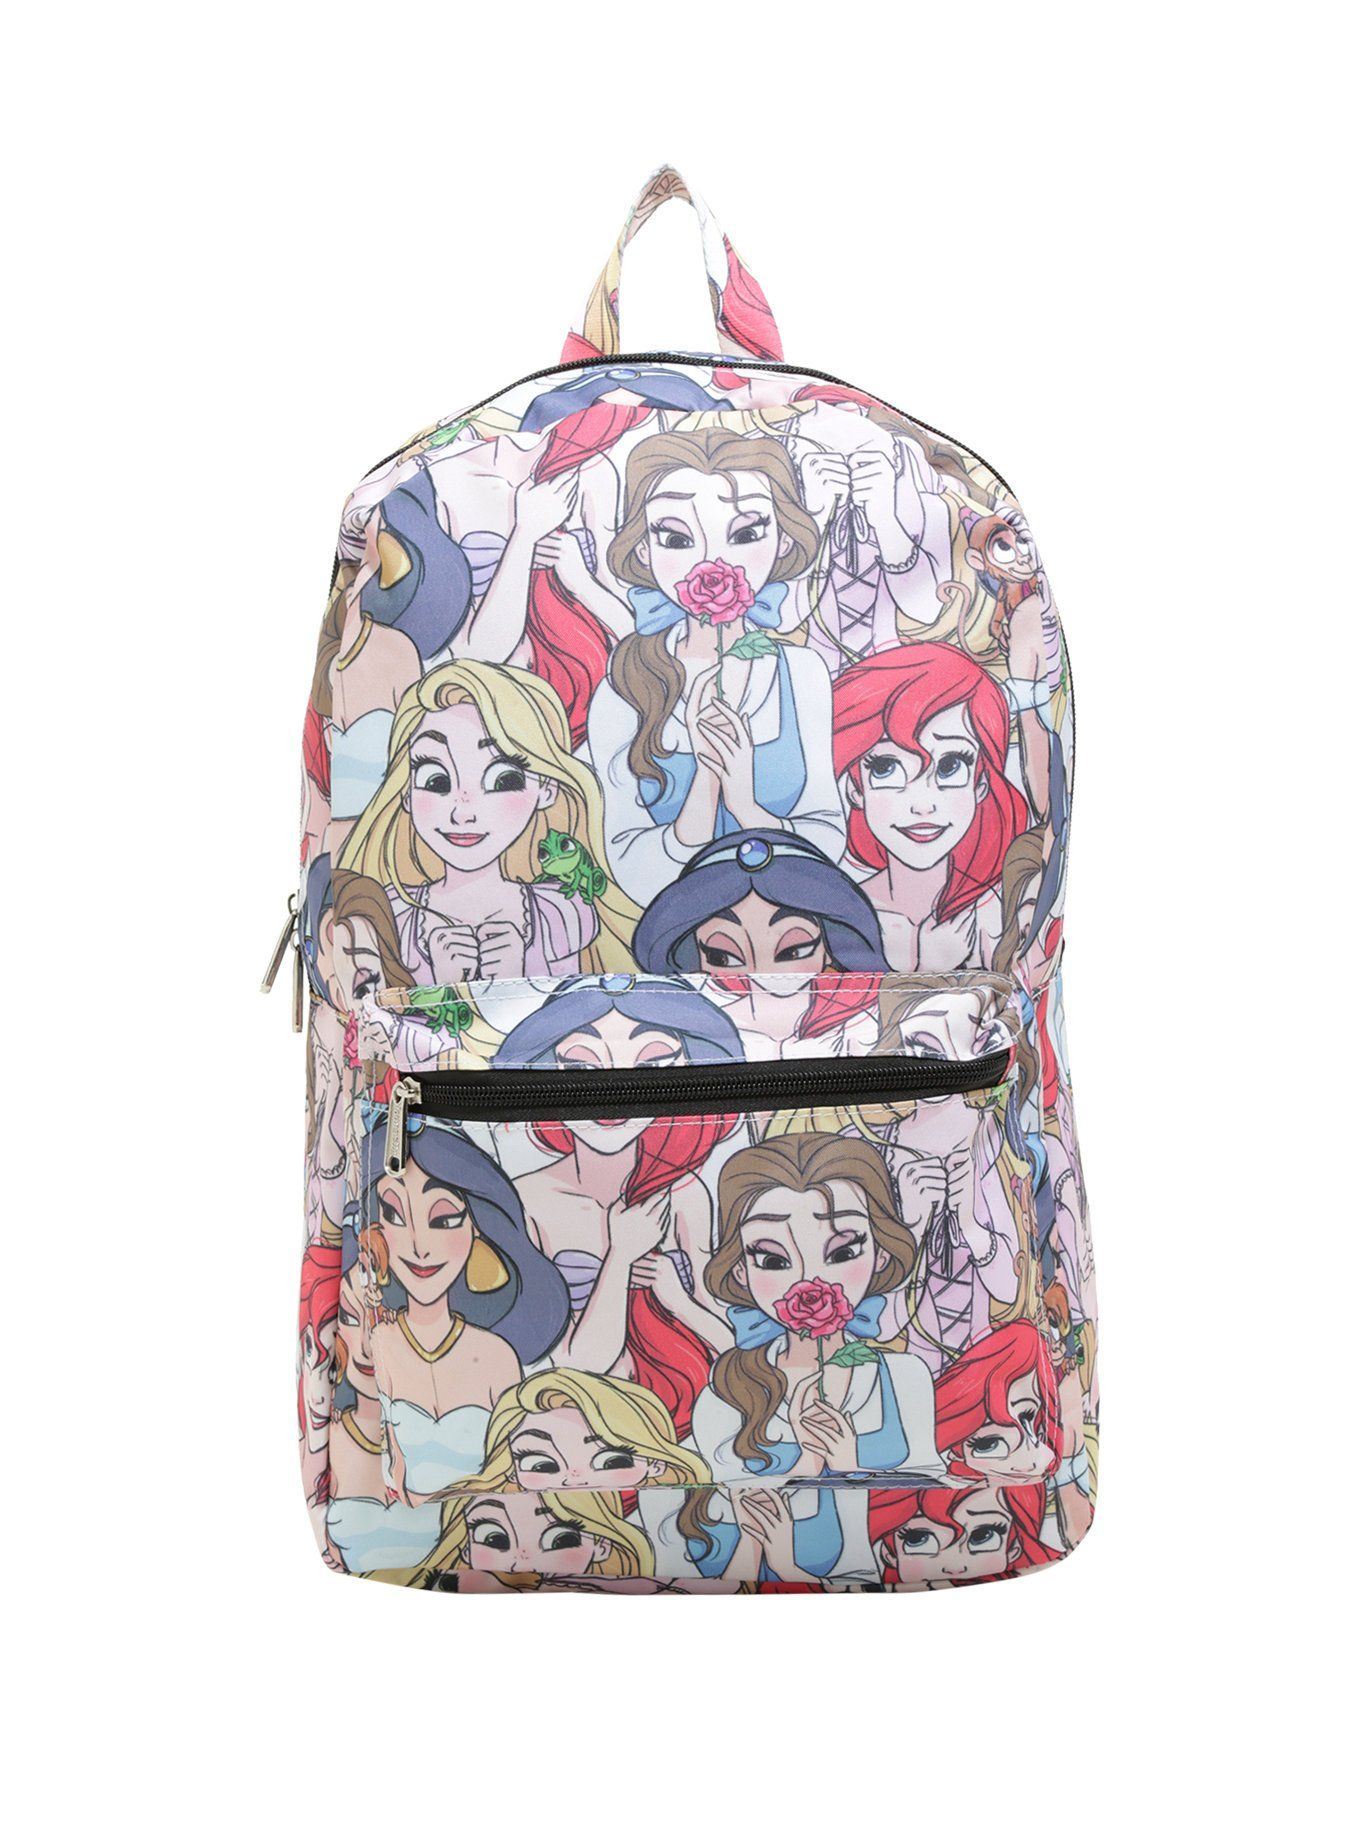 20b86306c1b Loungefly disney princess characters backpack in 2019